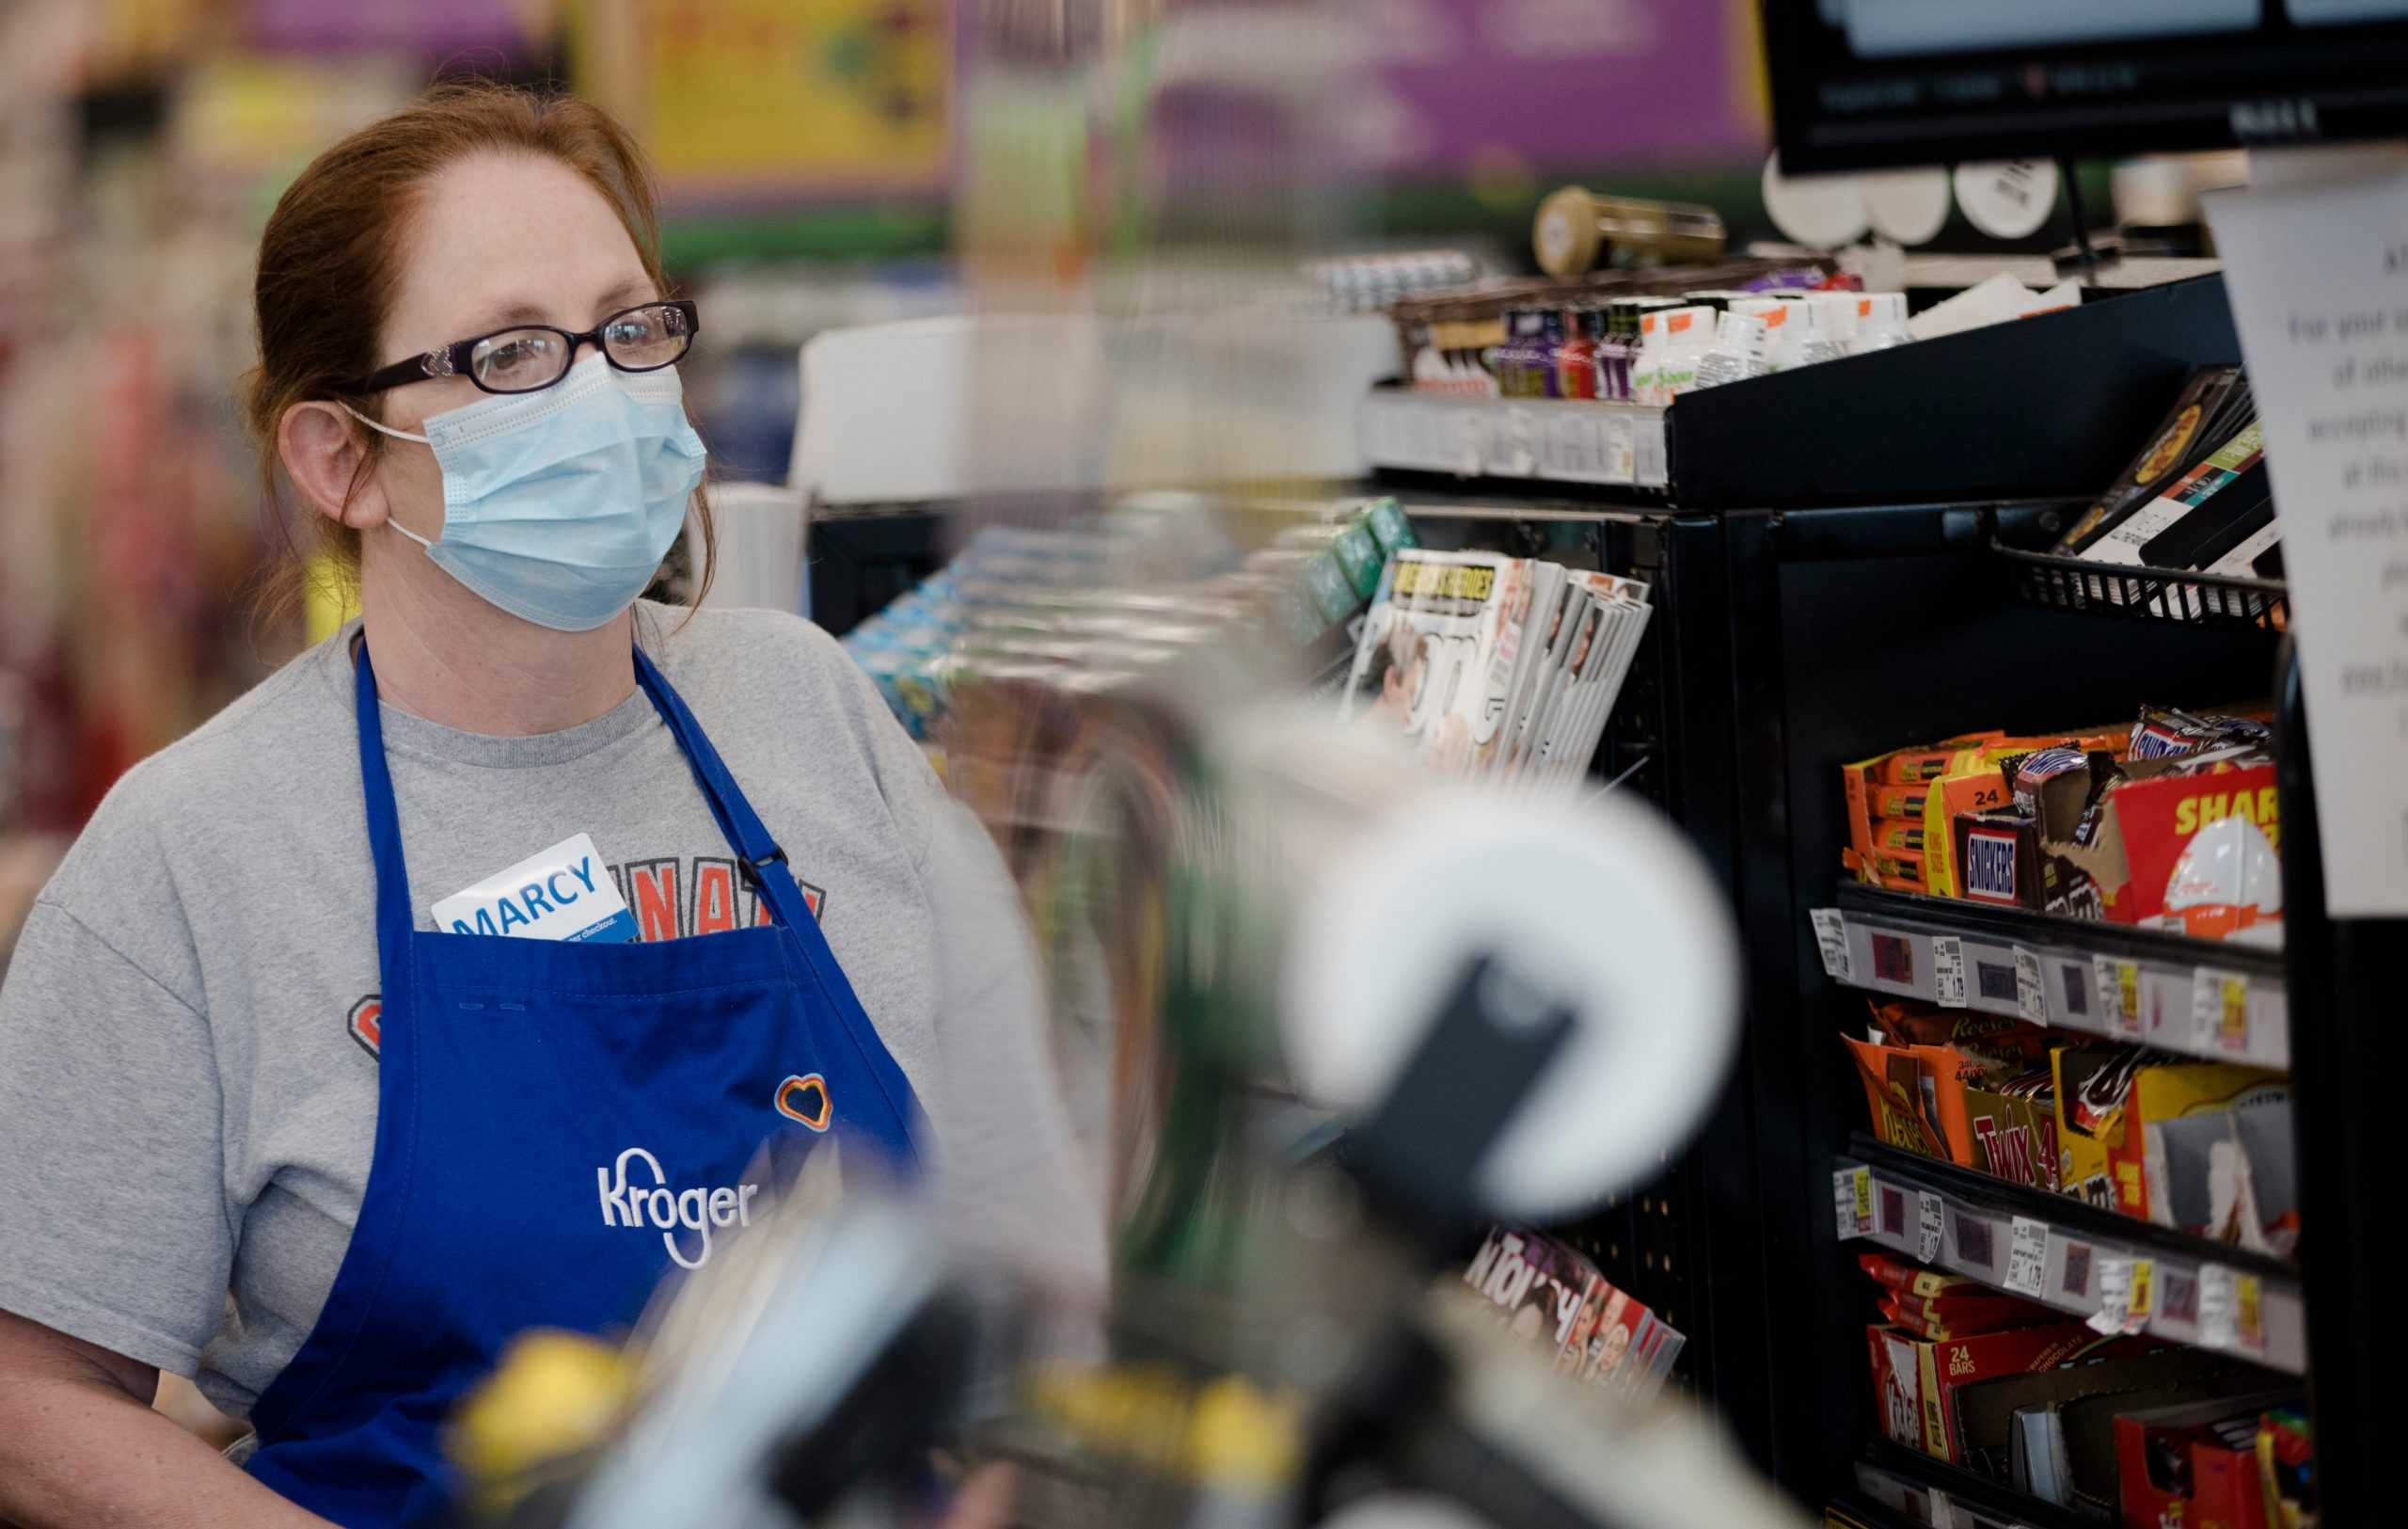 Kroger will pay workers $100 to get COVID-19 vaccine